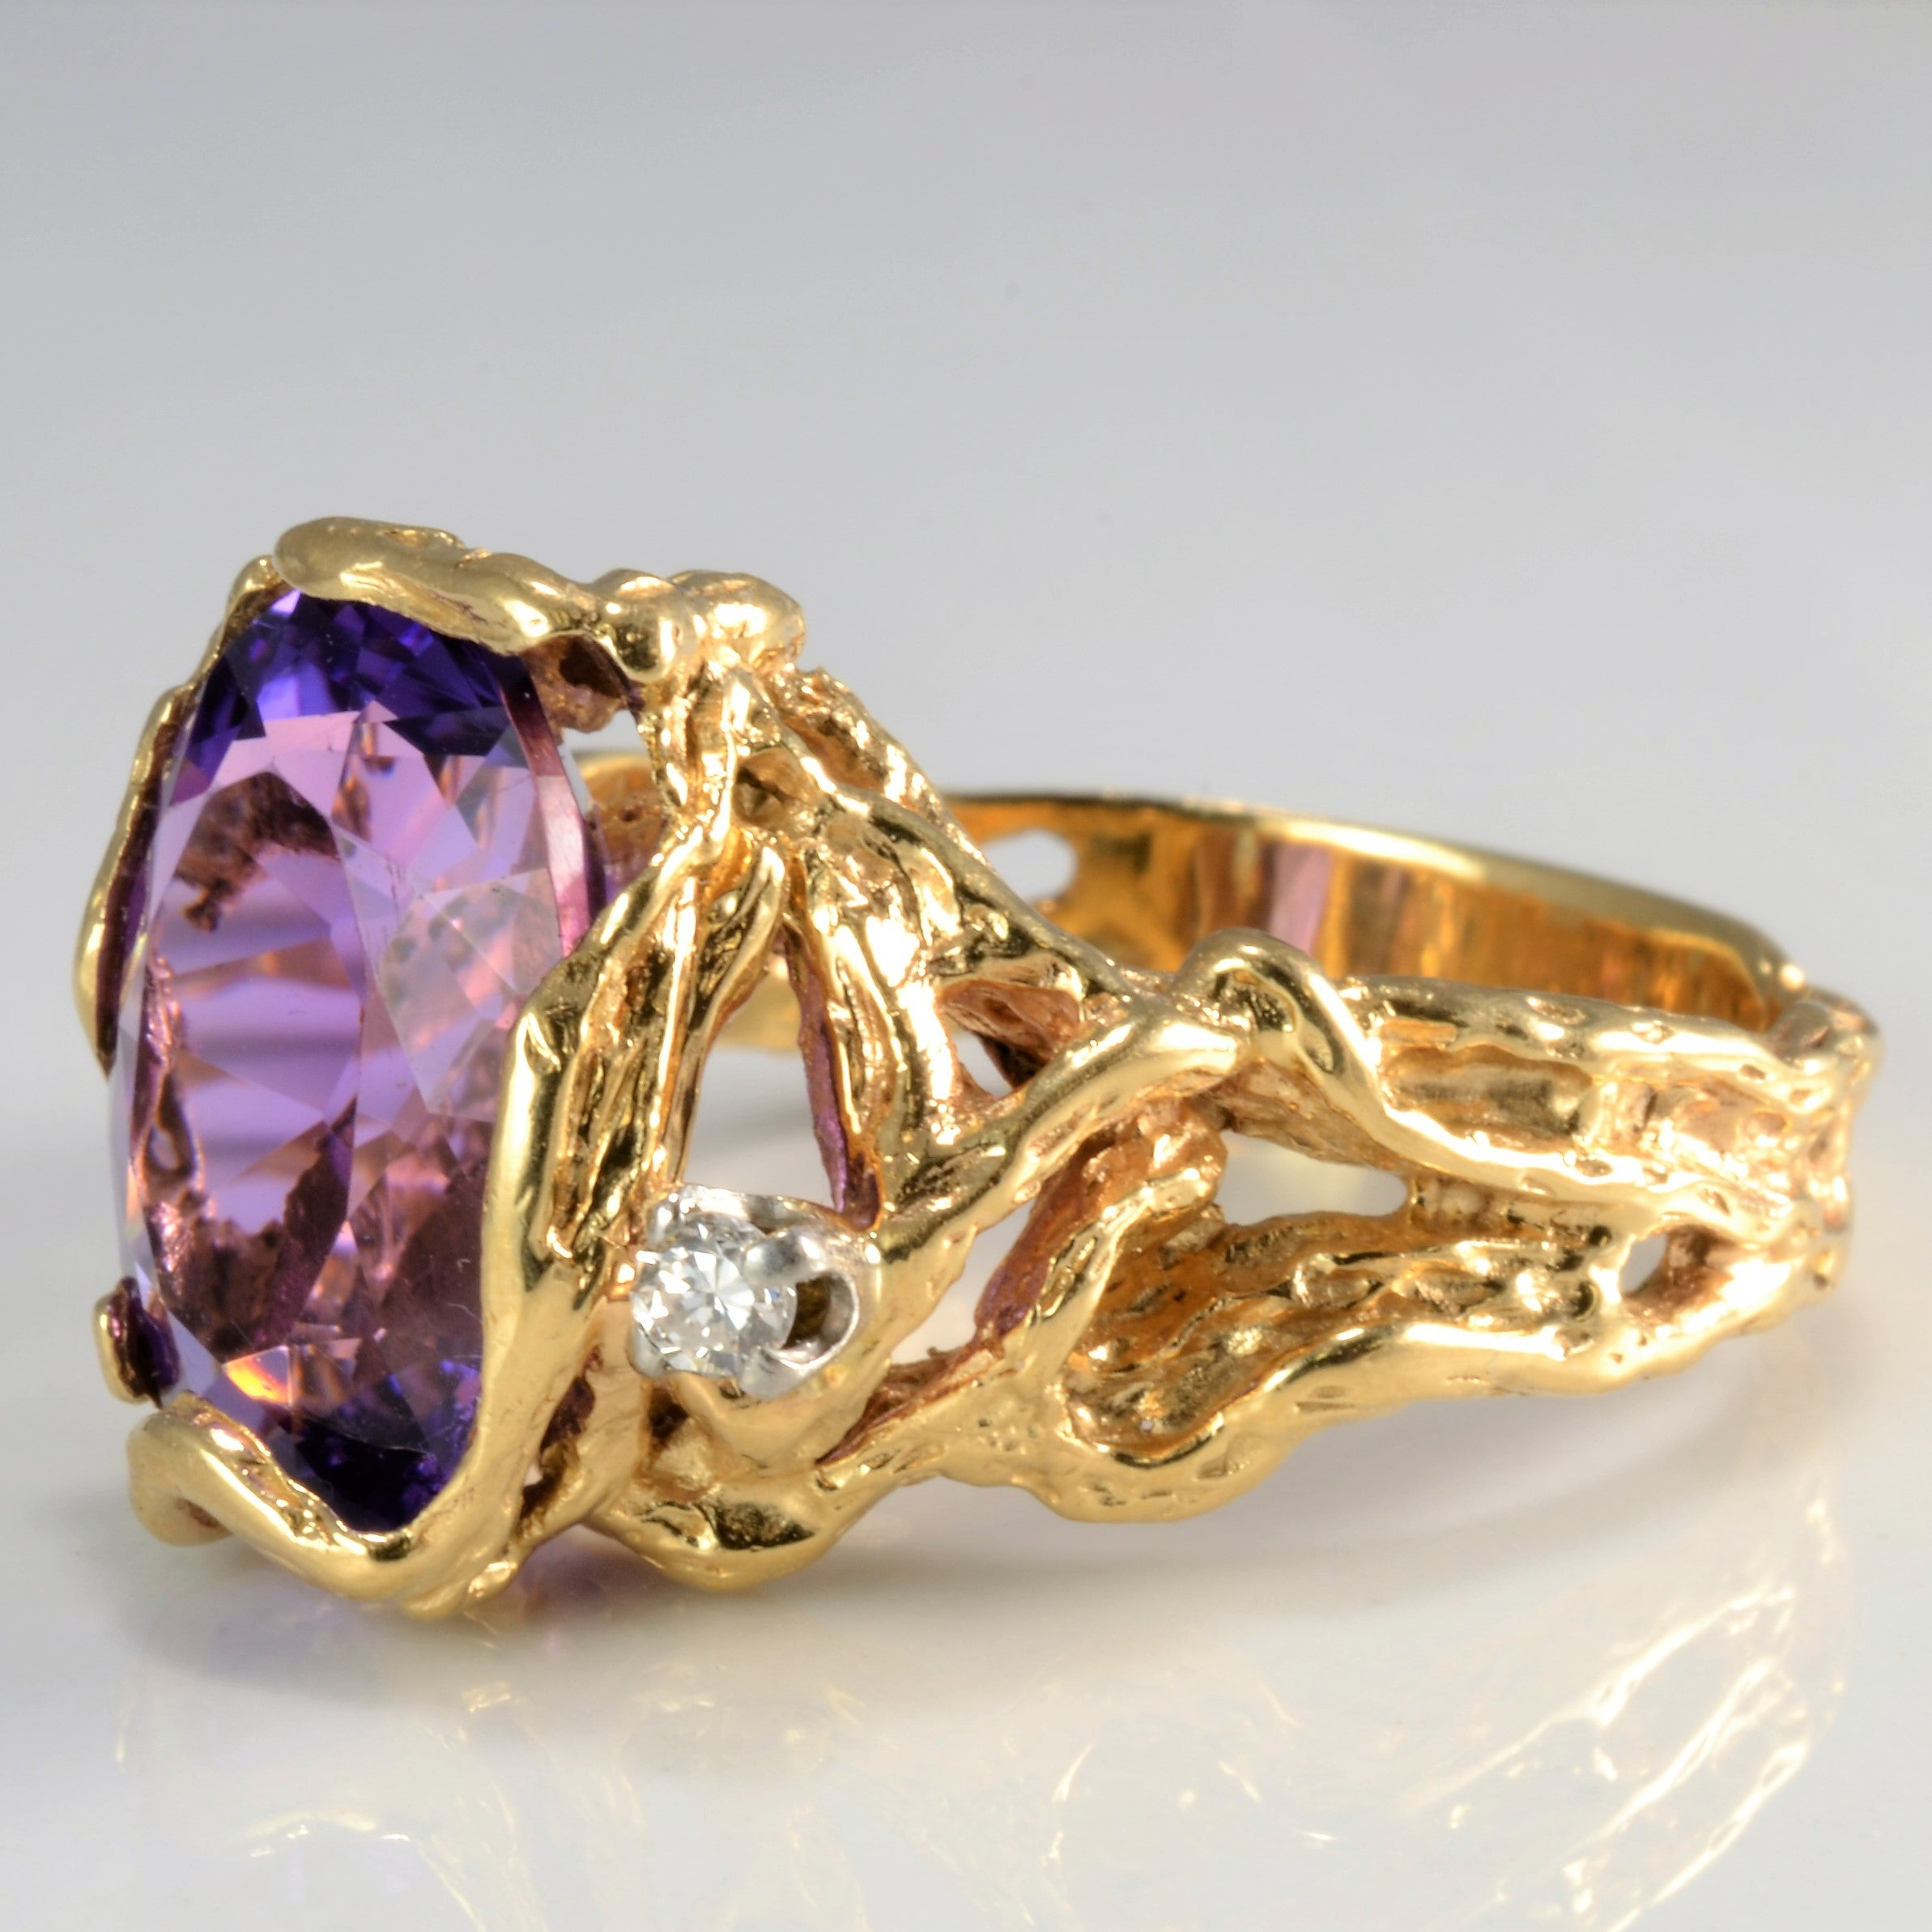 Unique Pattern Amethyst & Diamond Ring | SZ 9.75 |